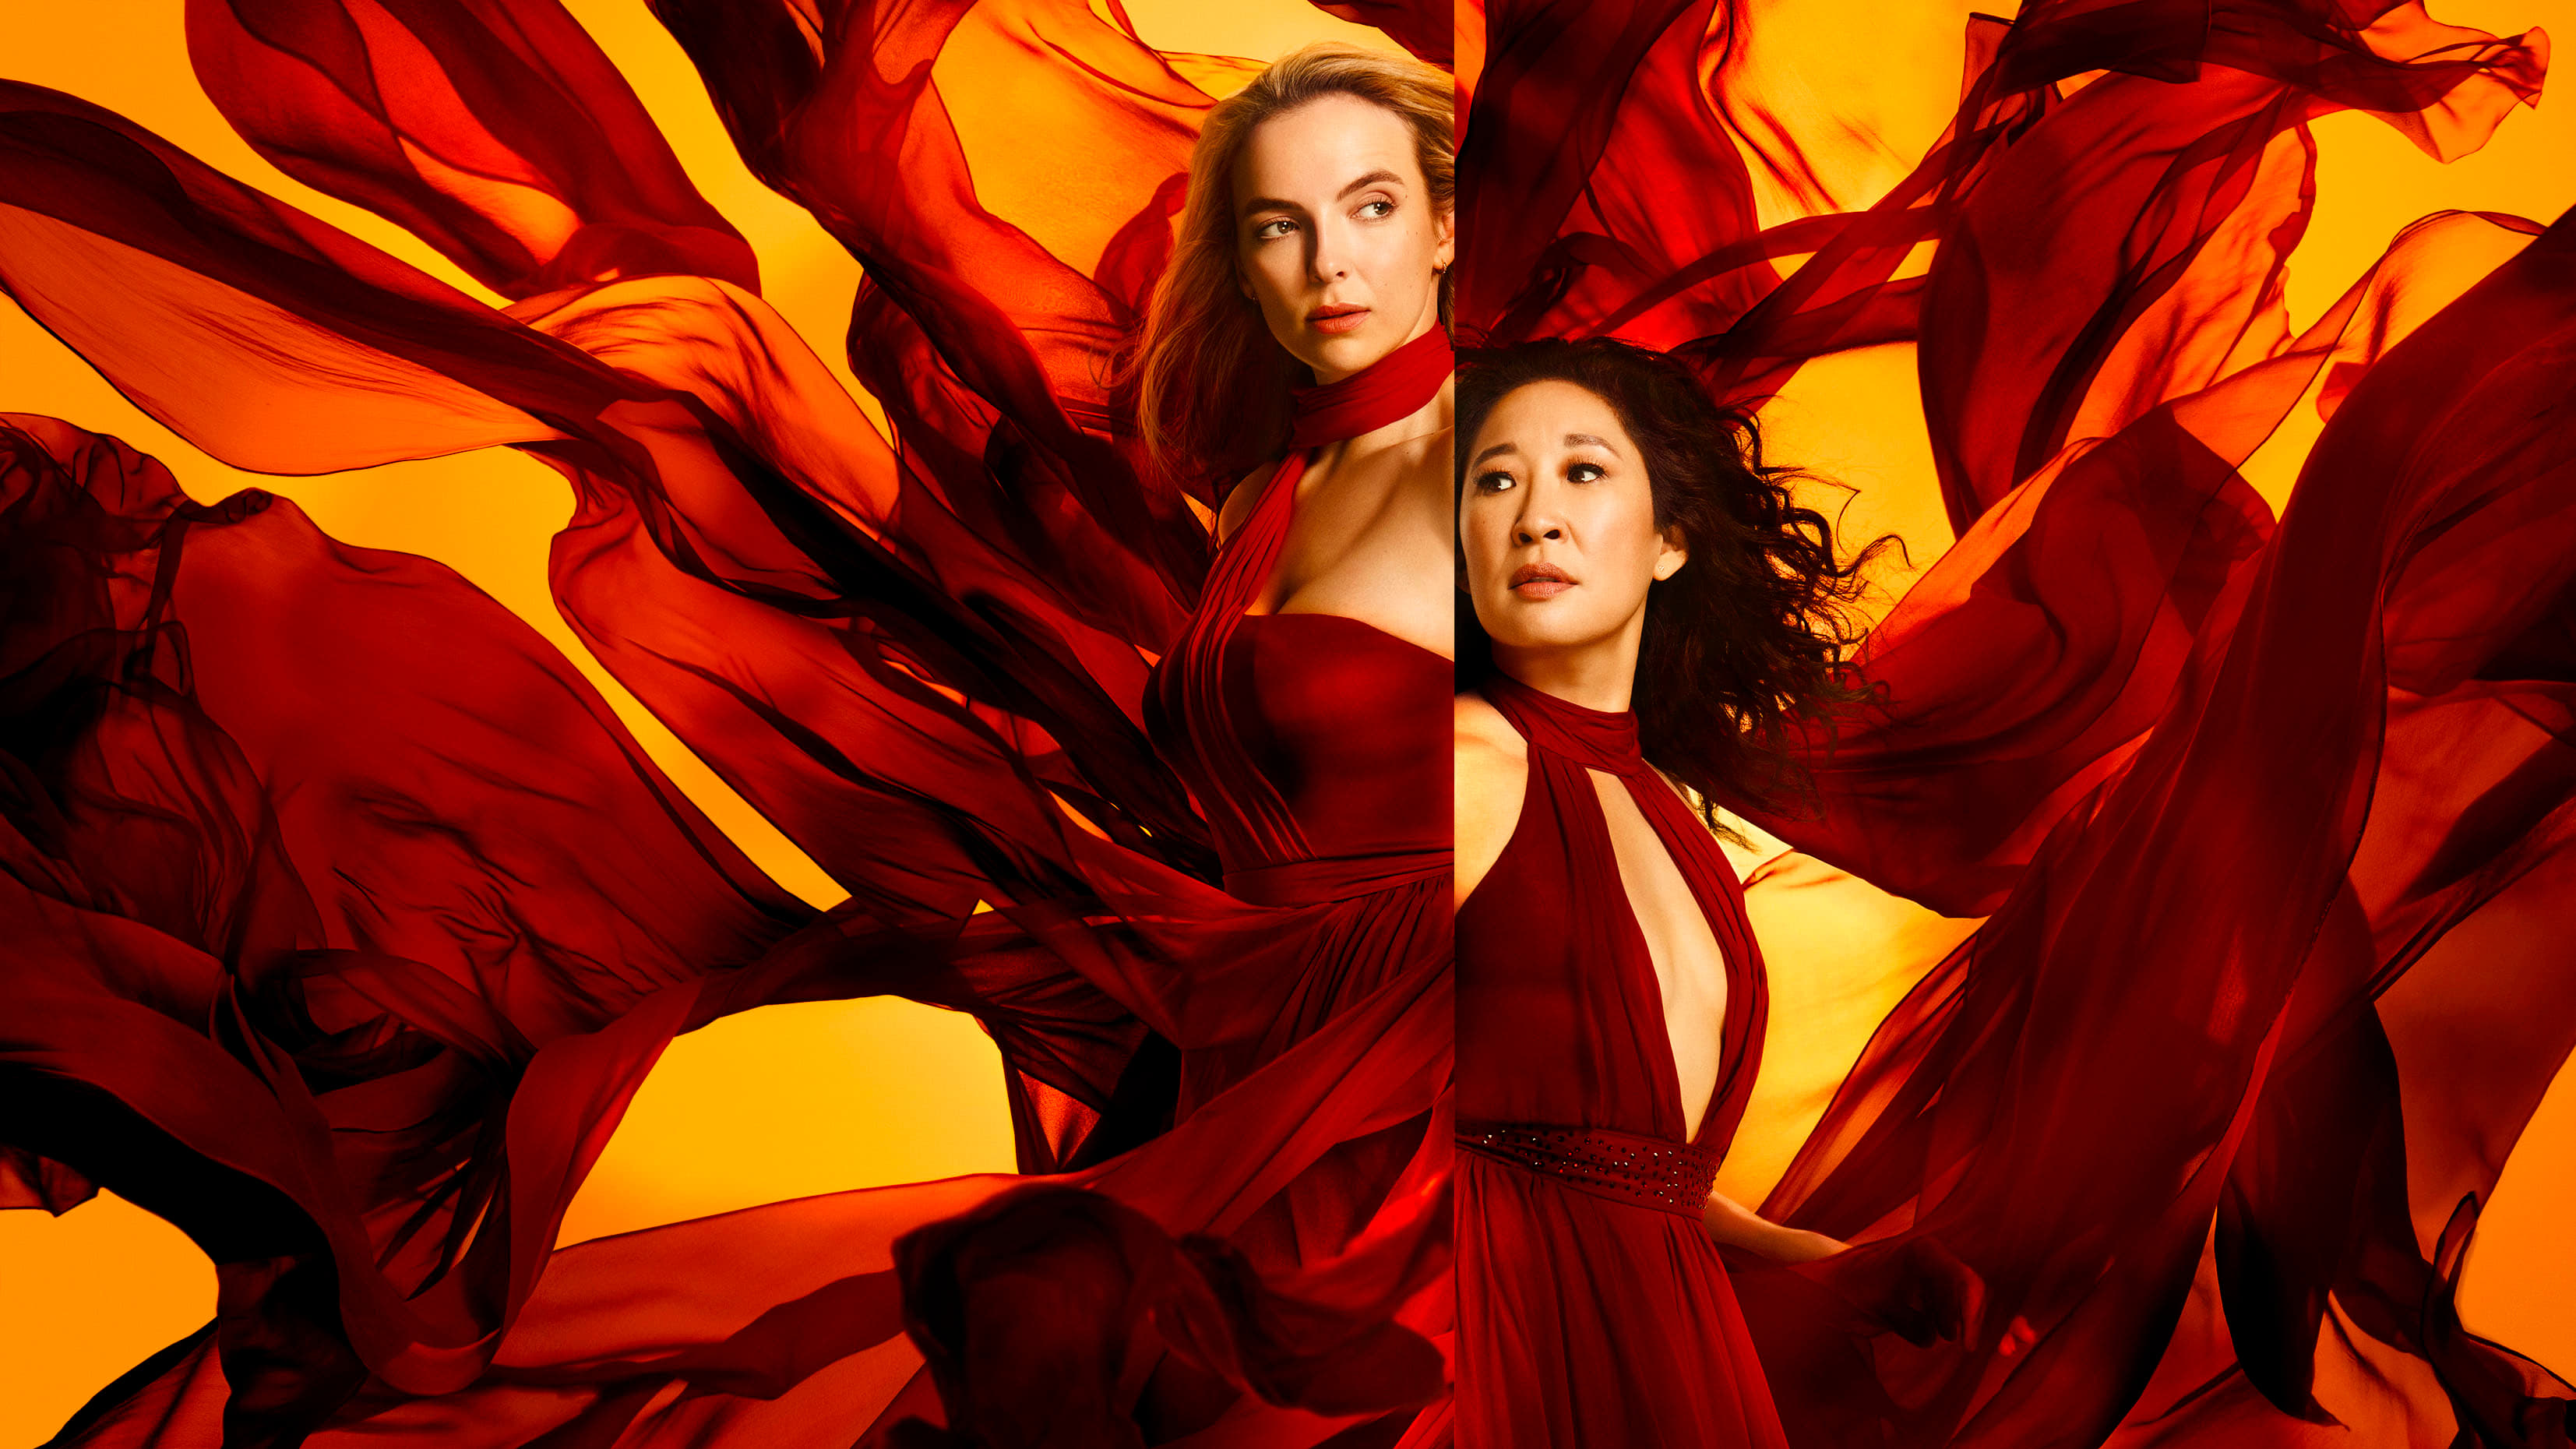 Production fourth season Killing Eve delayed